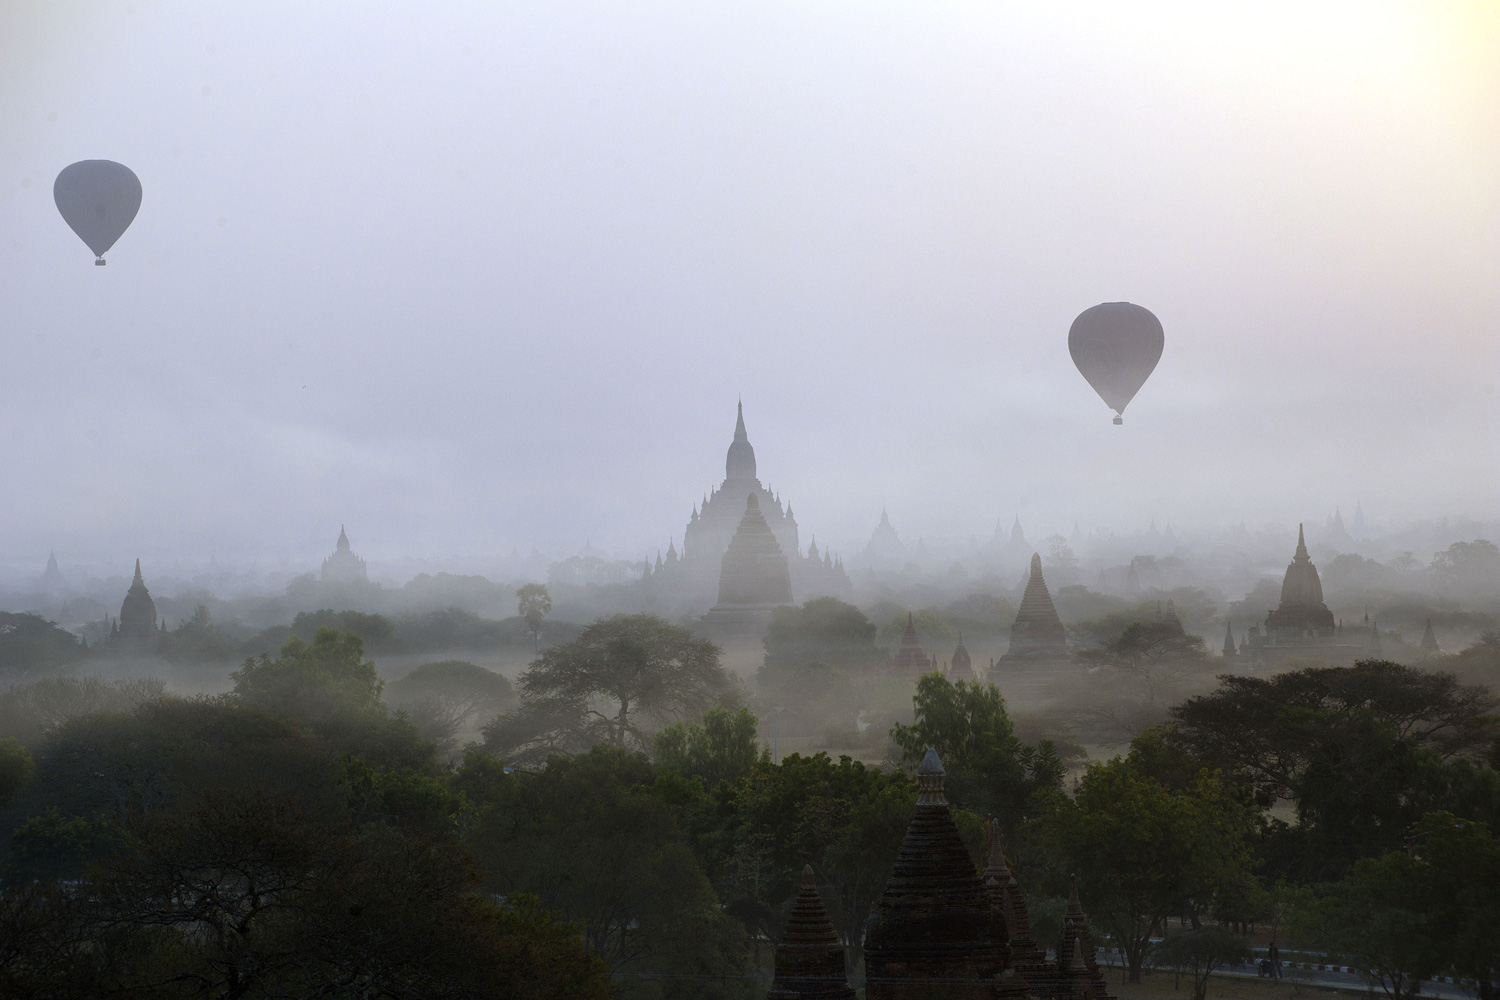 Feb. 26, 2012. Hot air balloons carrying tourists rise above the pagodas at dawn in Myanmar's ancient town of Bagan.